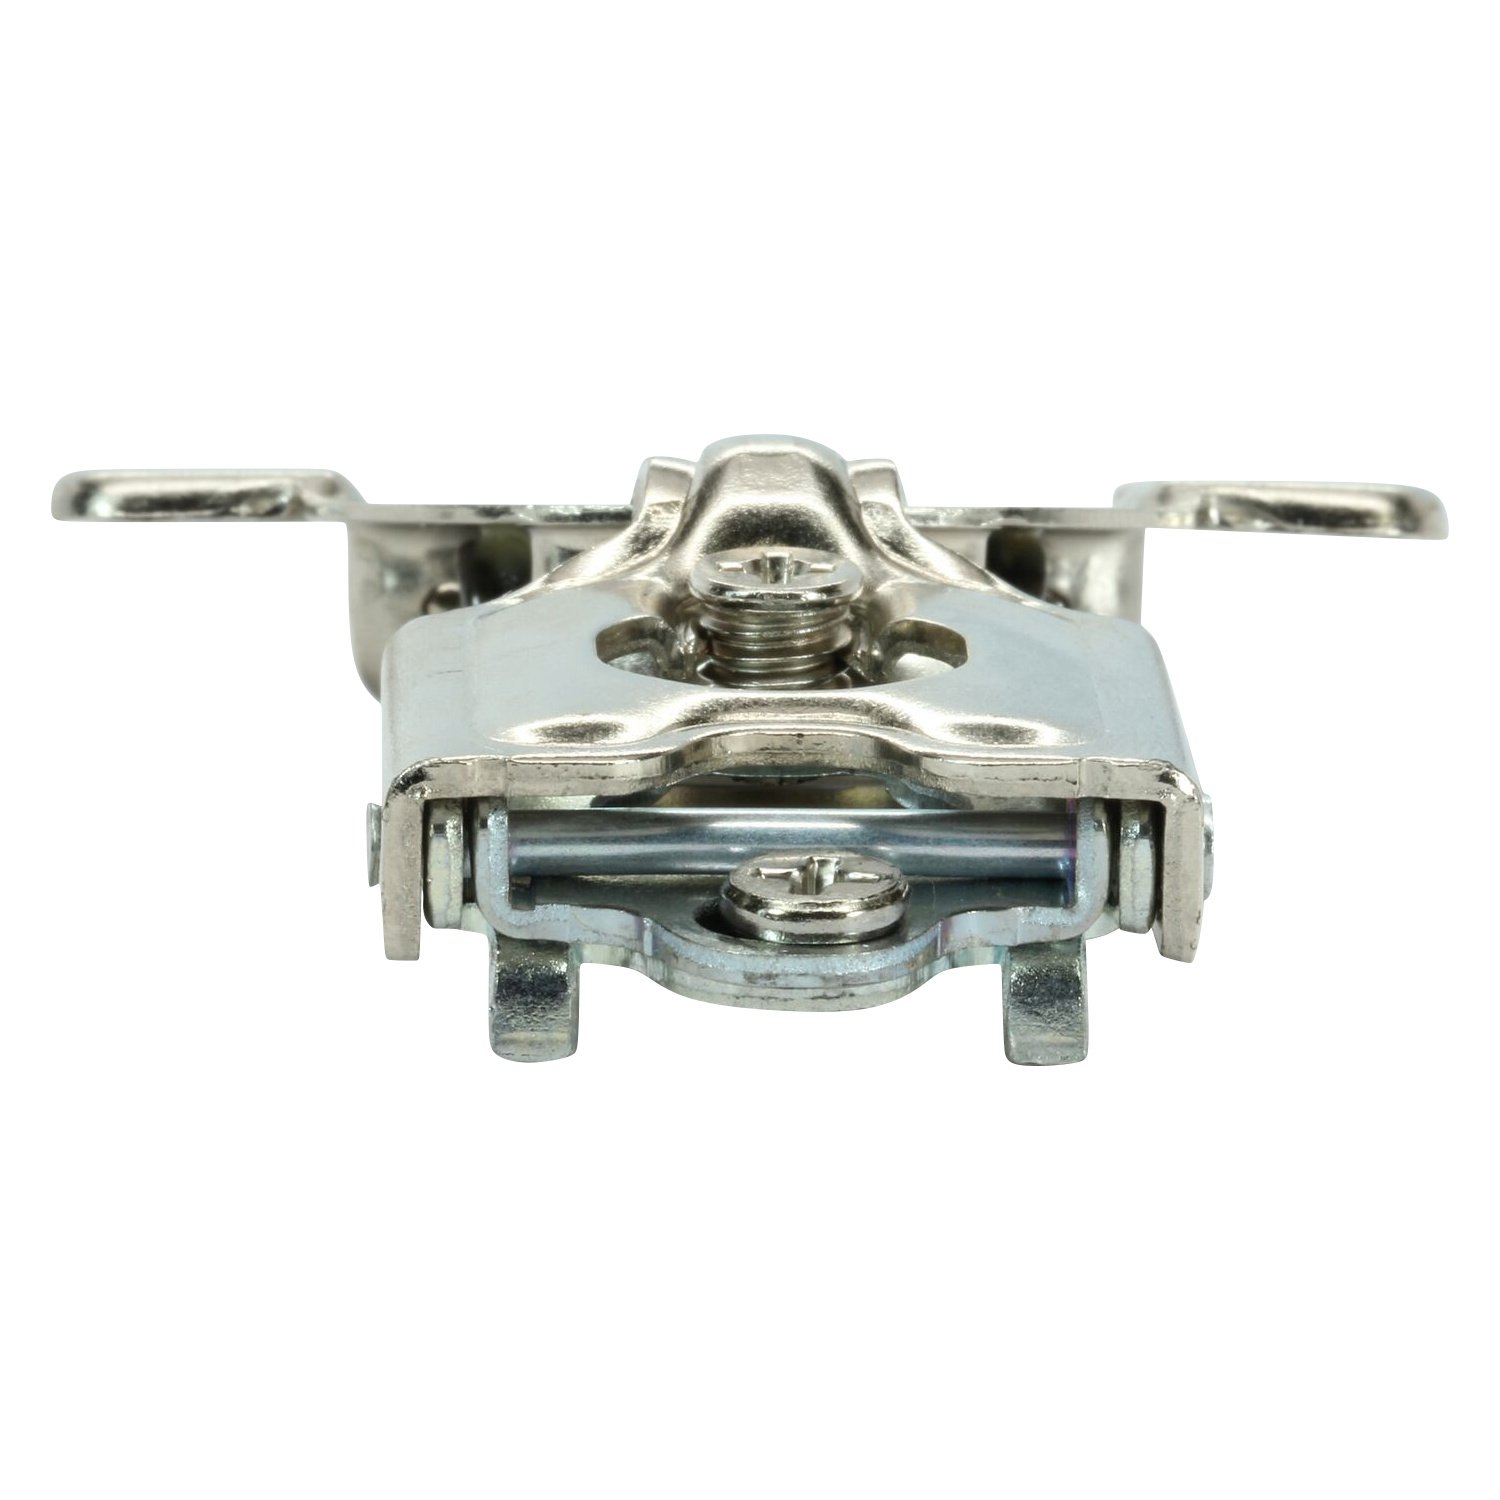 50 Pack Rok Hardware Grass TEC 864 108 Degree 1/4'' Overlay 3 Level Soft Close Screw On Compact Cabinet Hinge 04429A-15 3-Way Adjustment 45mm Boring Pattern by Rok (Image #3)